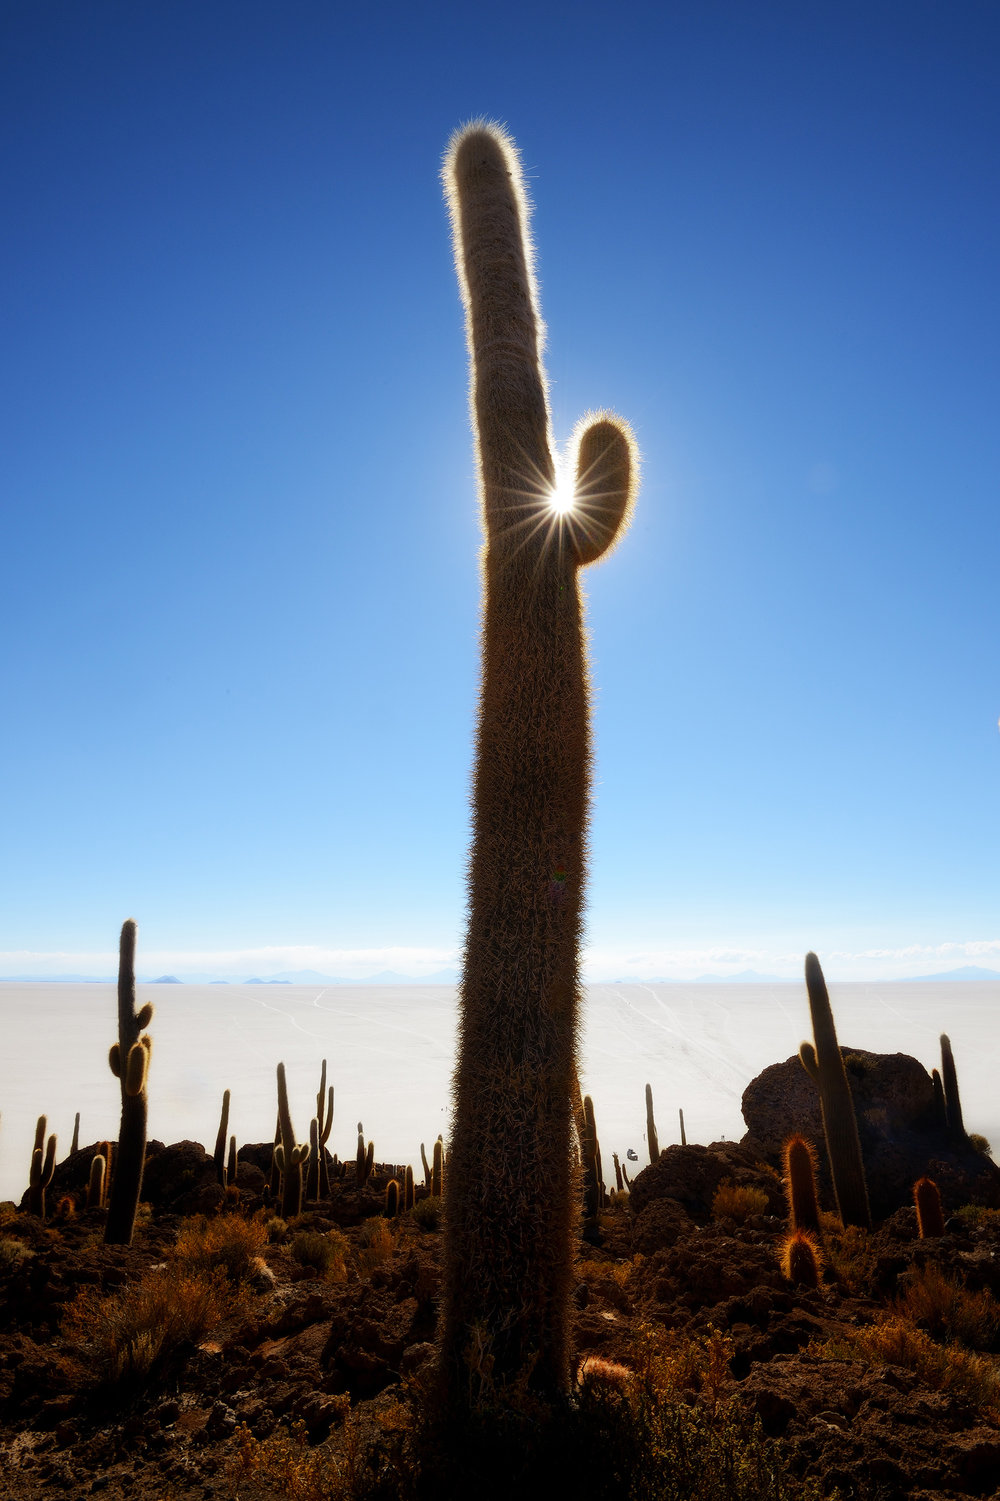 Isla dos Pescadores   The sun slowly goes down above the cactus-covered Isla dos Pescadores on the Salar de Uyuni